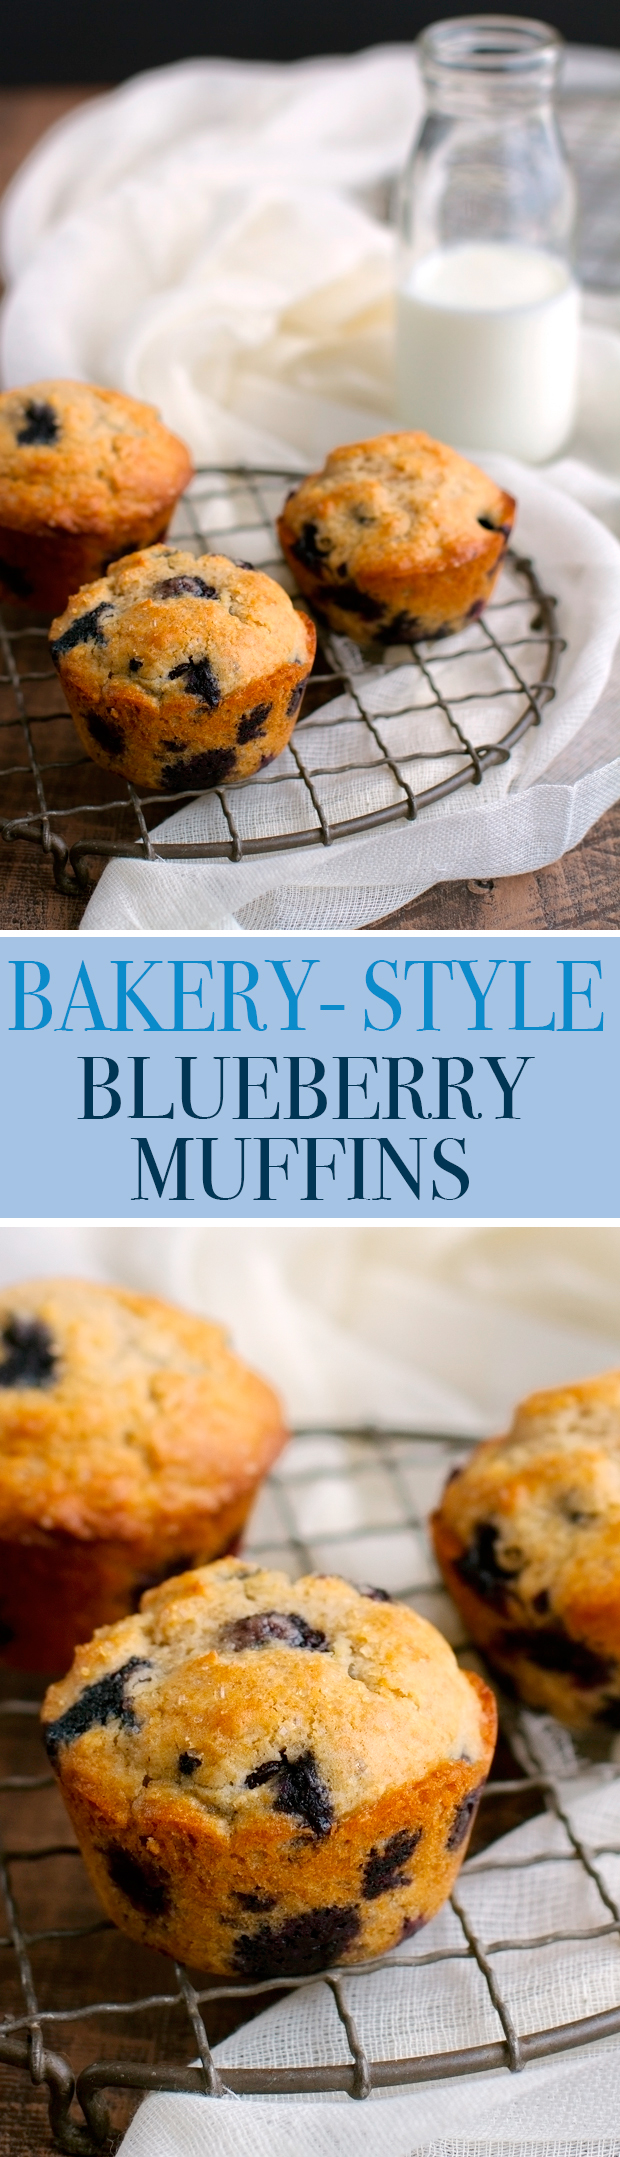 Bakery Style Blueberry Muffins - Ready in 30 minutes and the most tender muffins you've EVER had! #blueberrymuffins #muffins #bakerystylemuffins | Littlespicejar.com